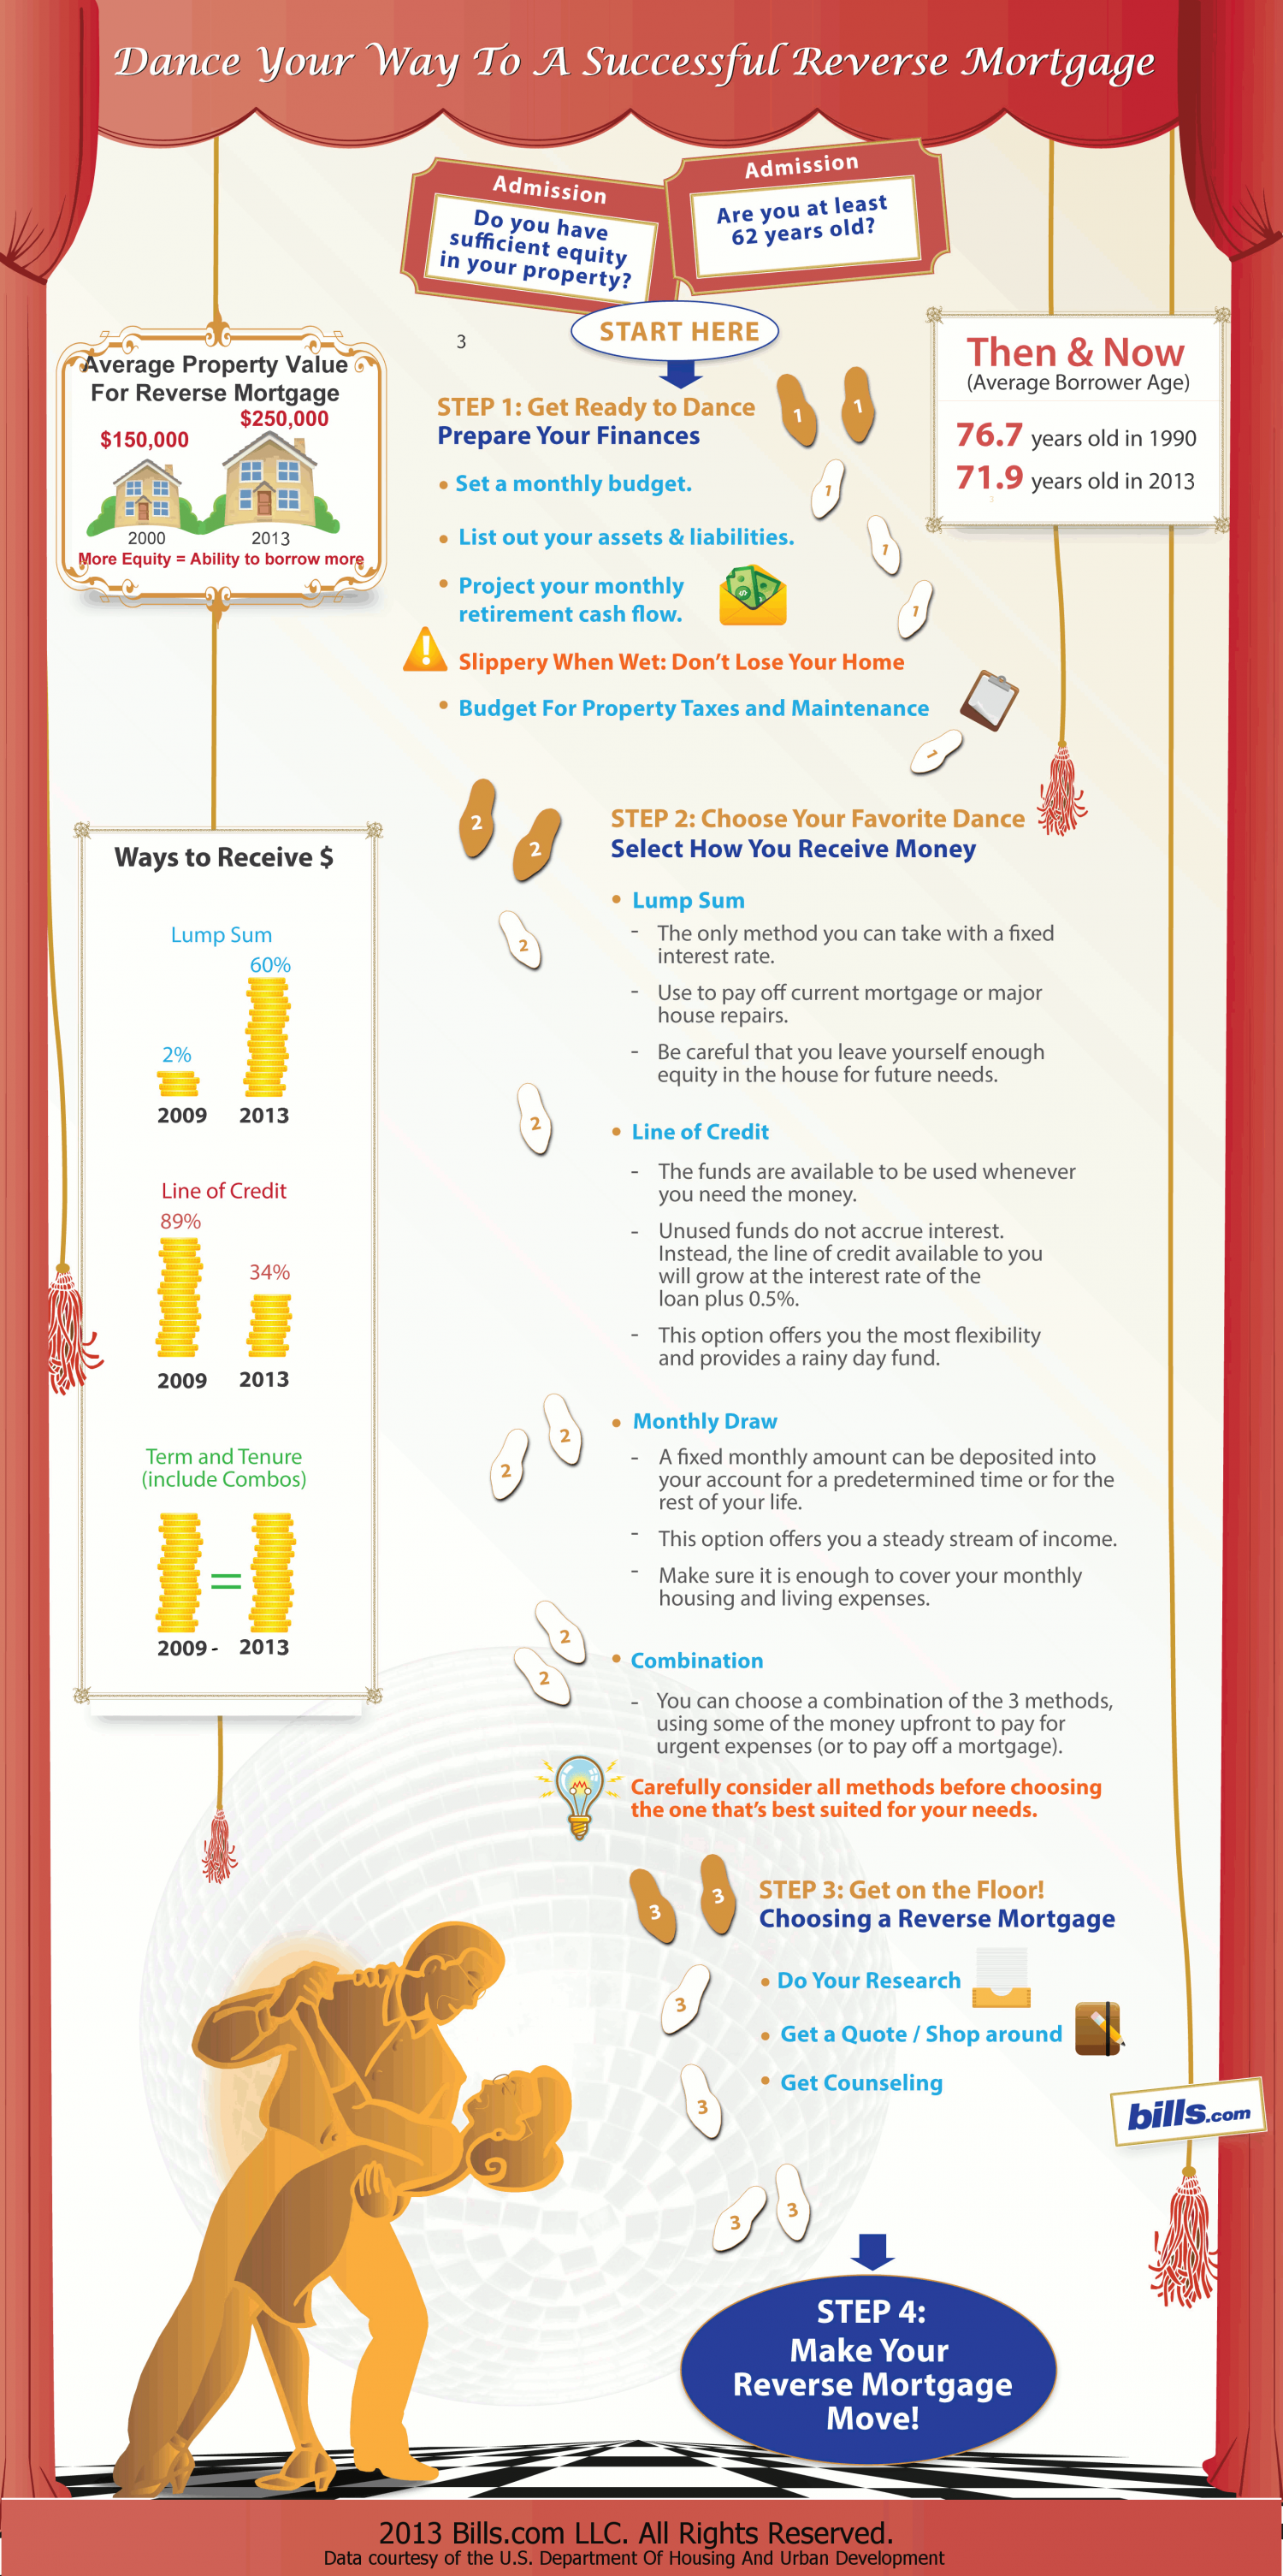 Dance your way to a successful reverse mortgage Infographic